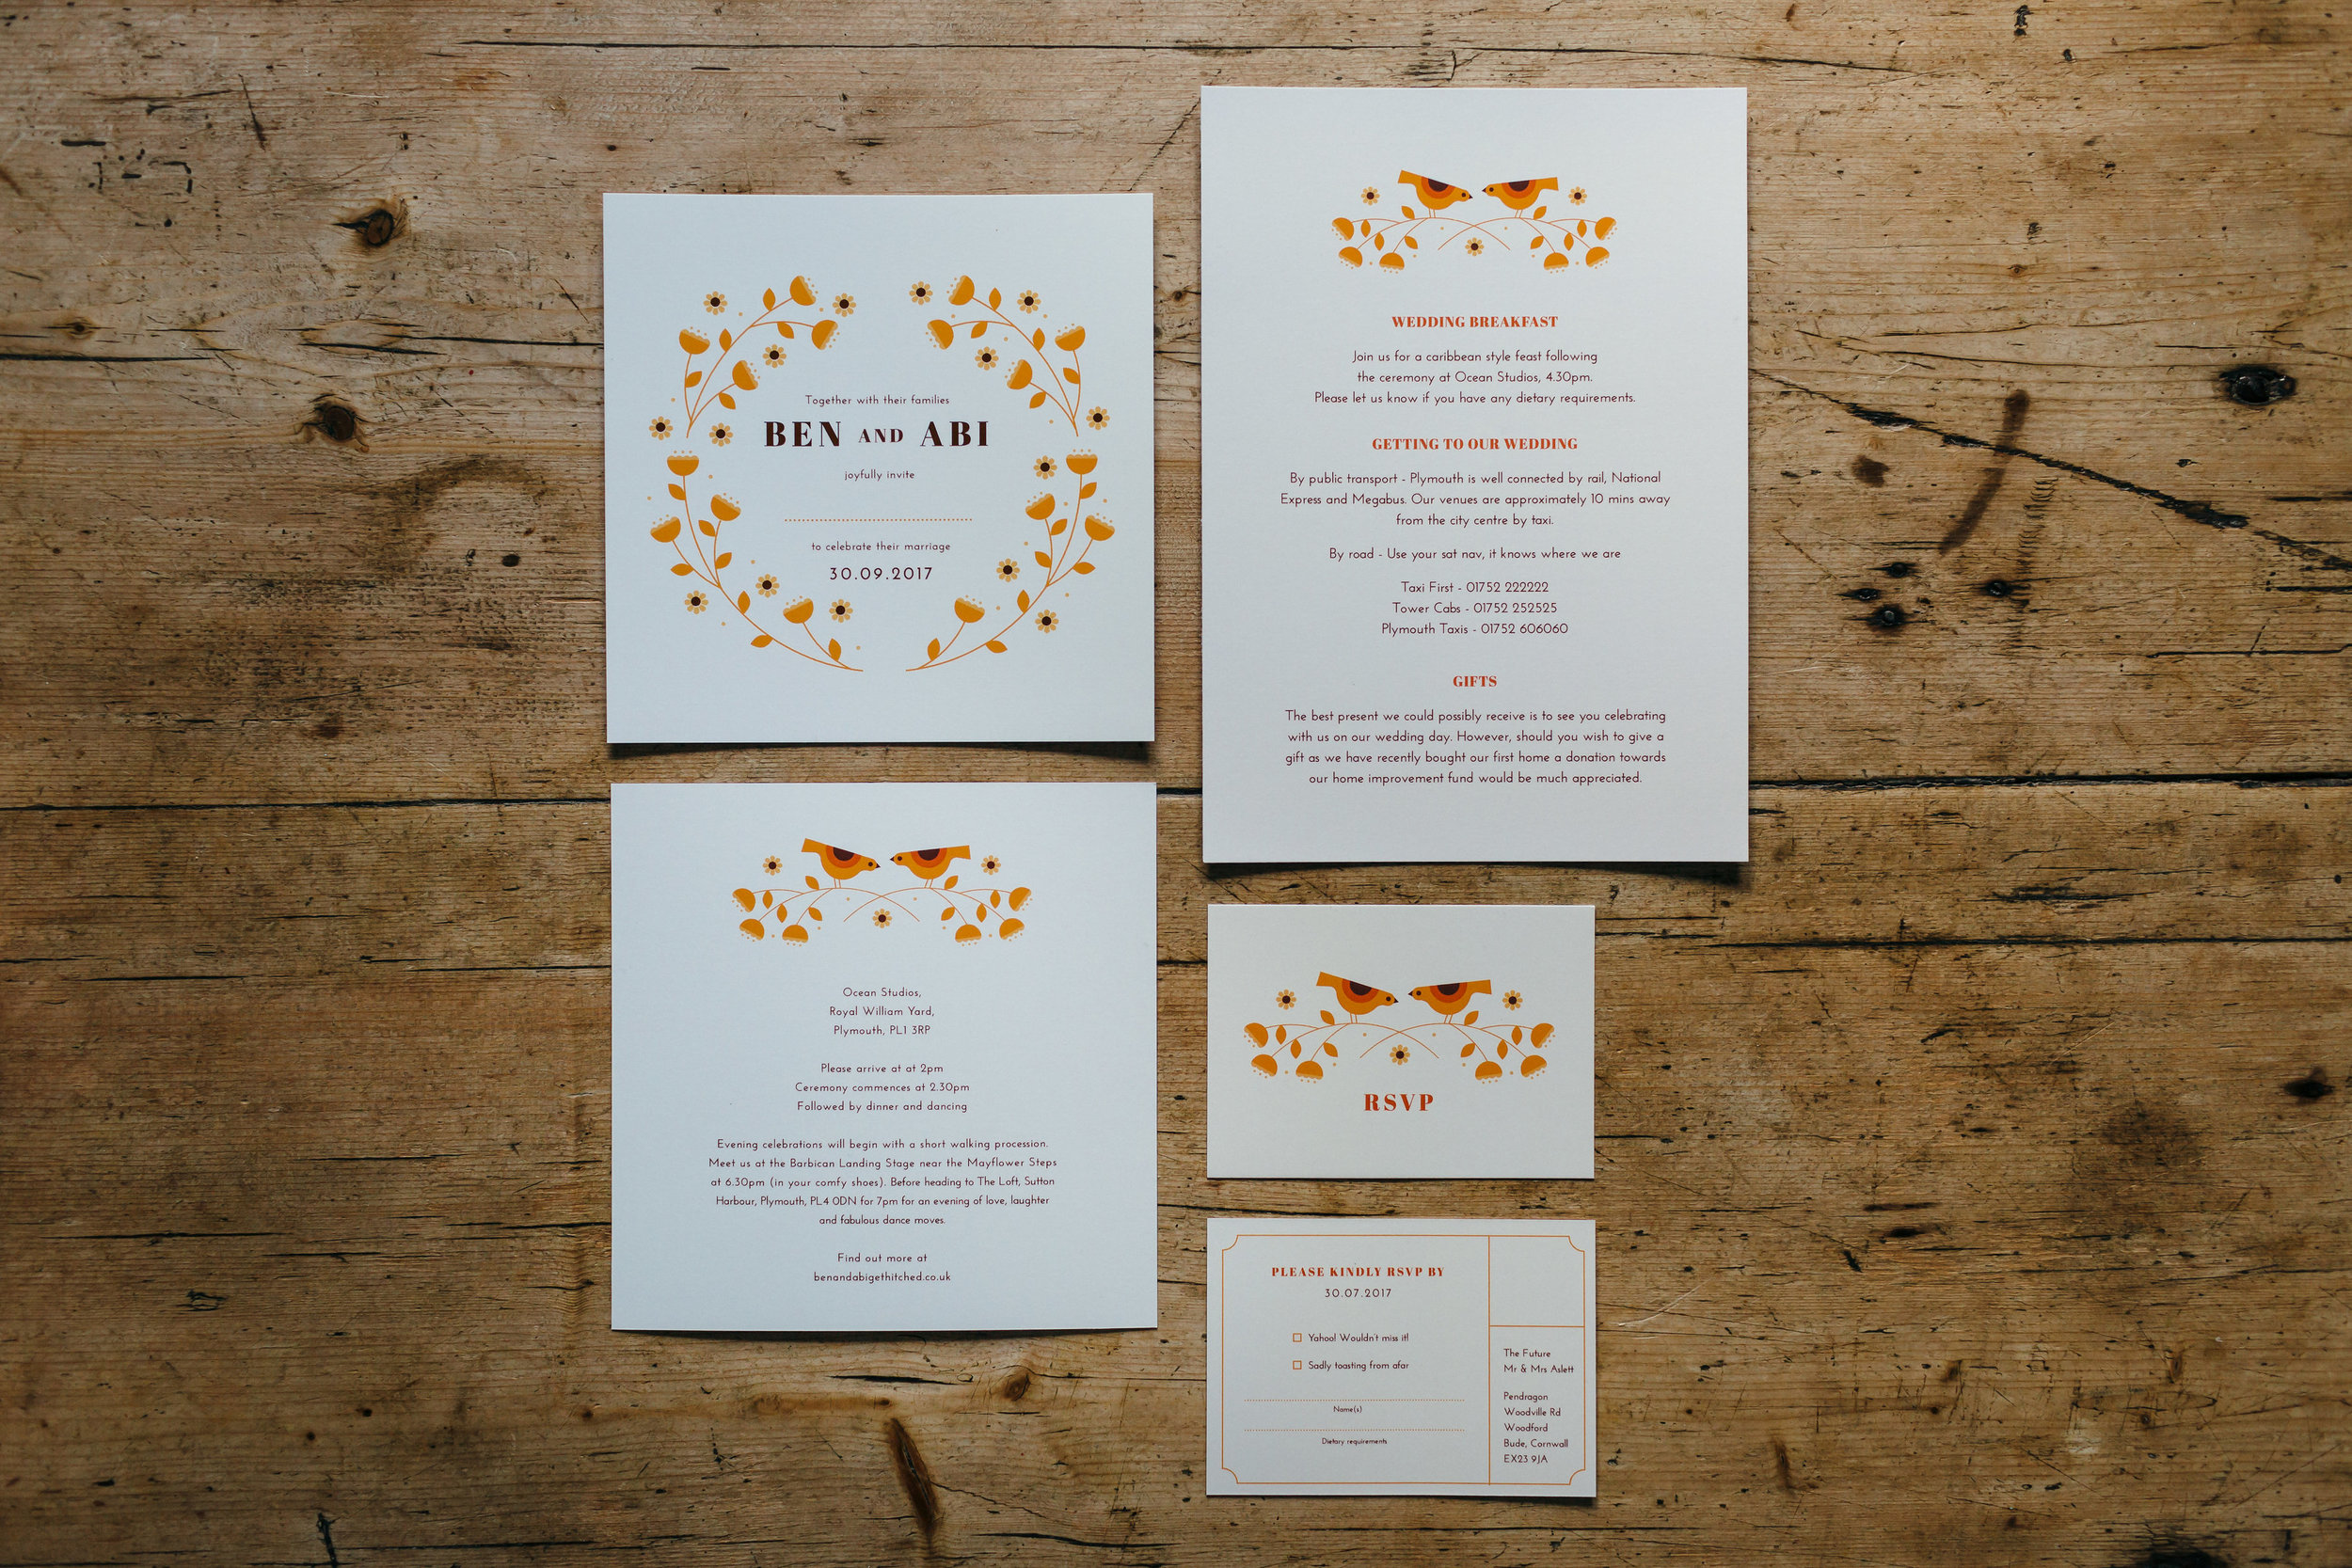 Our wedding invitations featured copper foiled invitations, an information card with more details about the day and a small RSVP card.